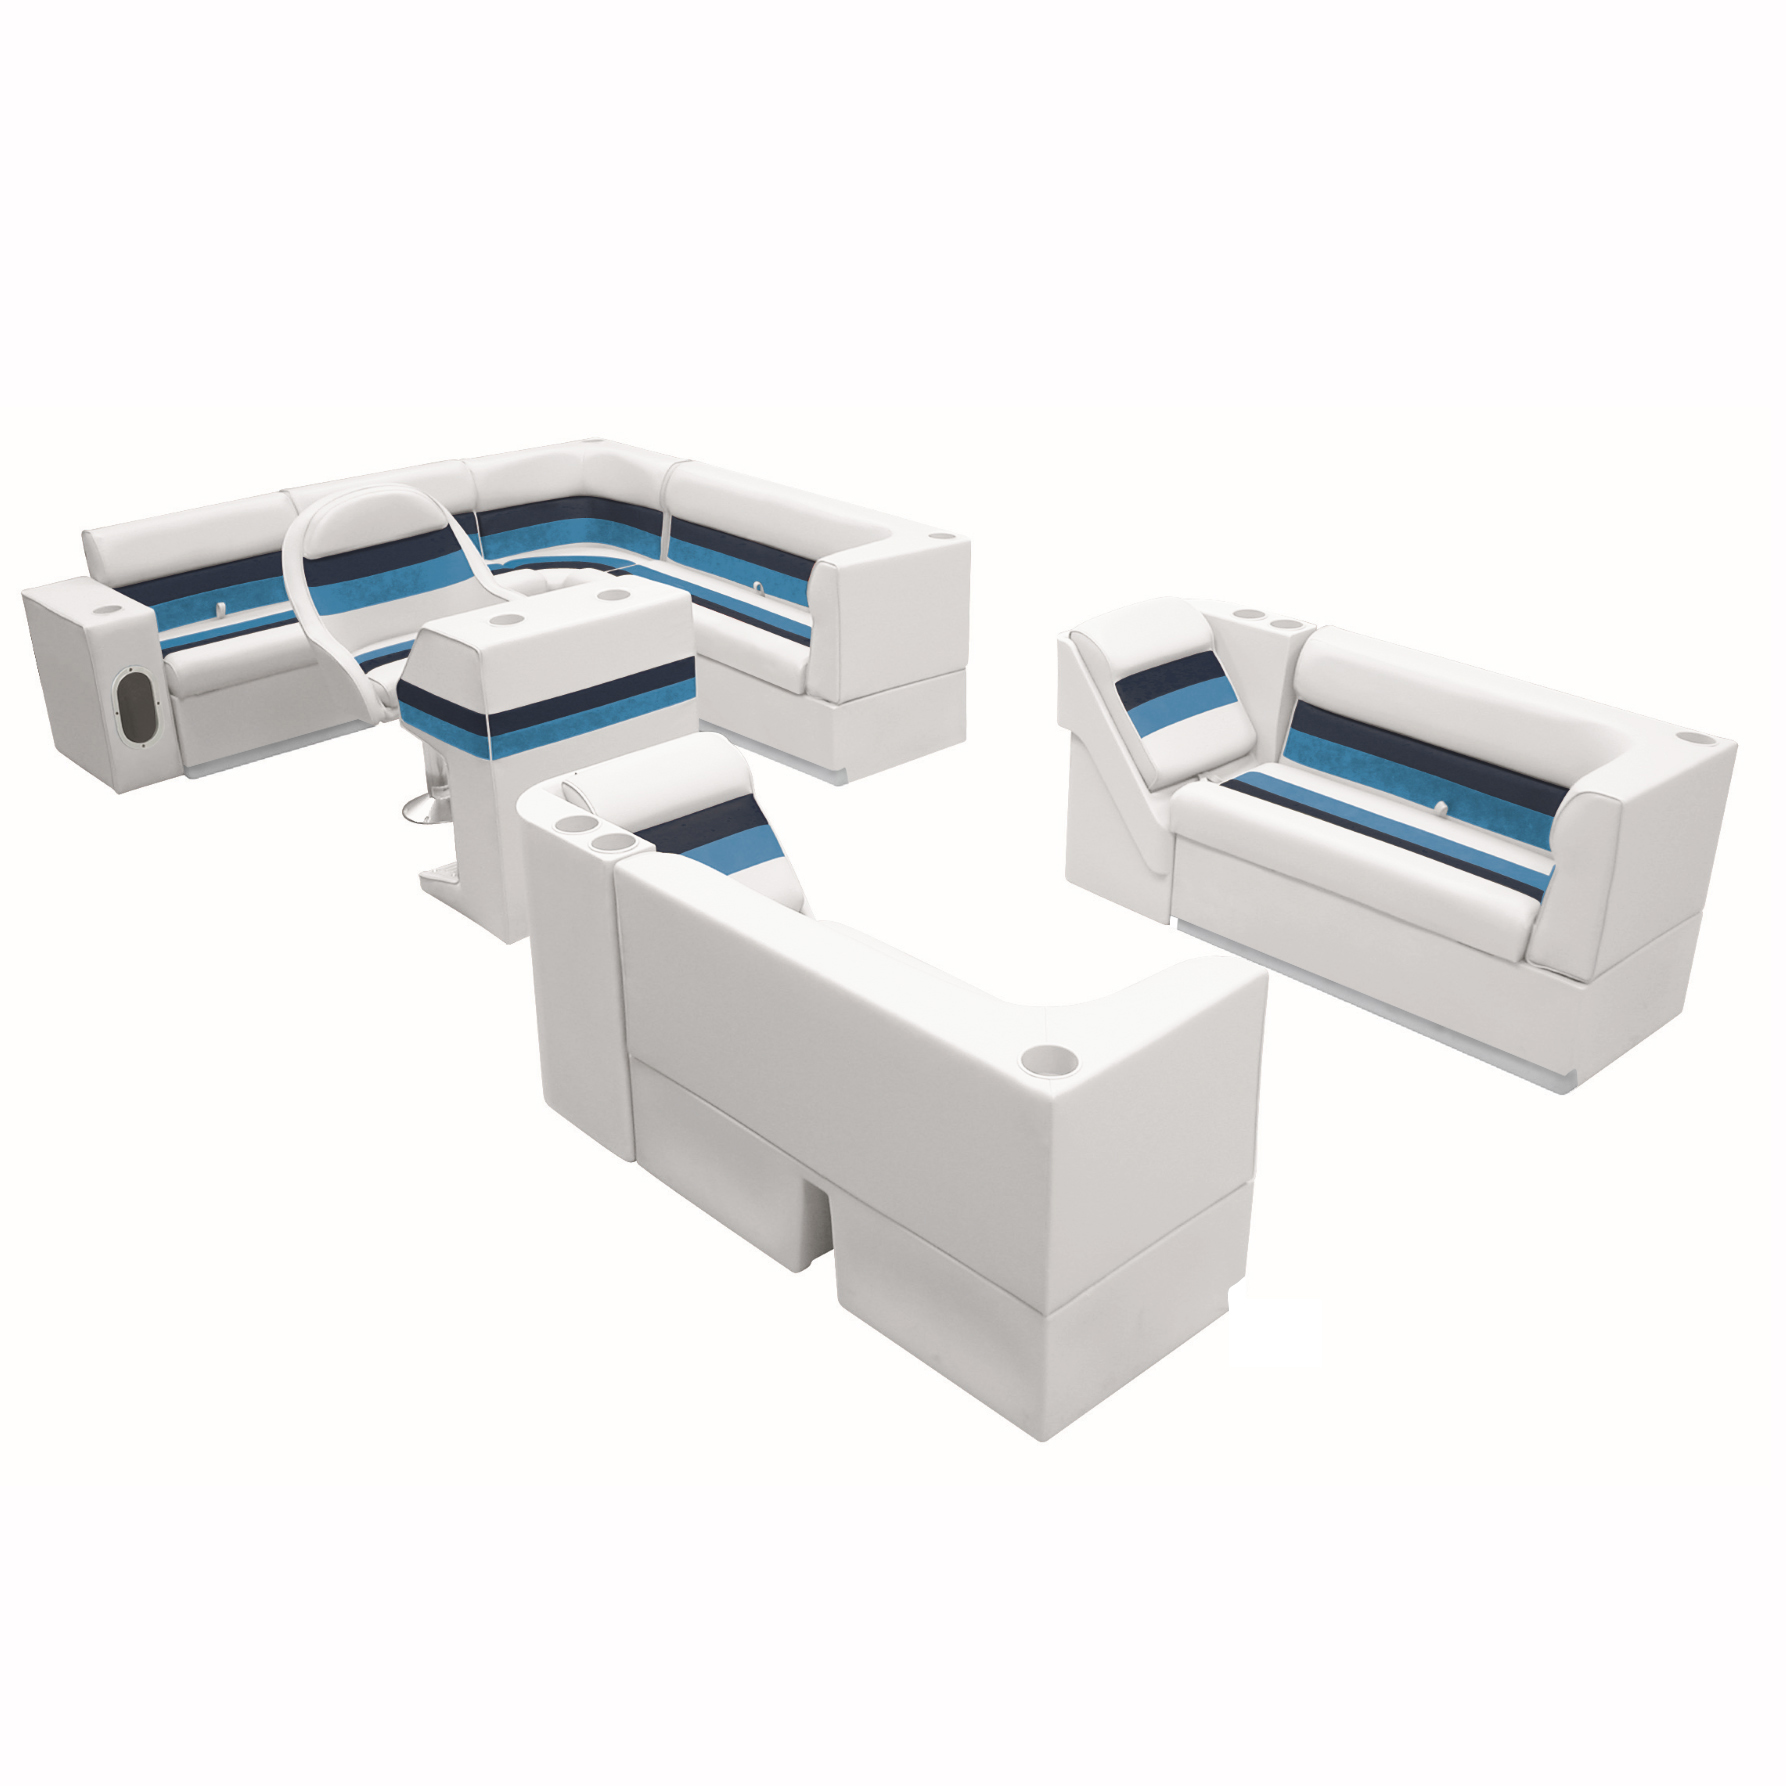 """Deluxe Pontoon Seats w/Toe Kick Base, Big """"L"""" Package Plus Stand, White/Nvy/Blue"""